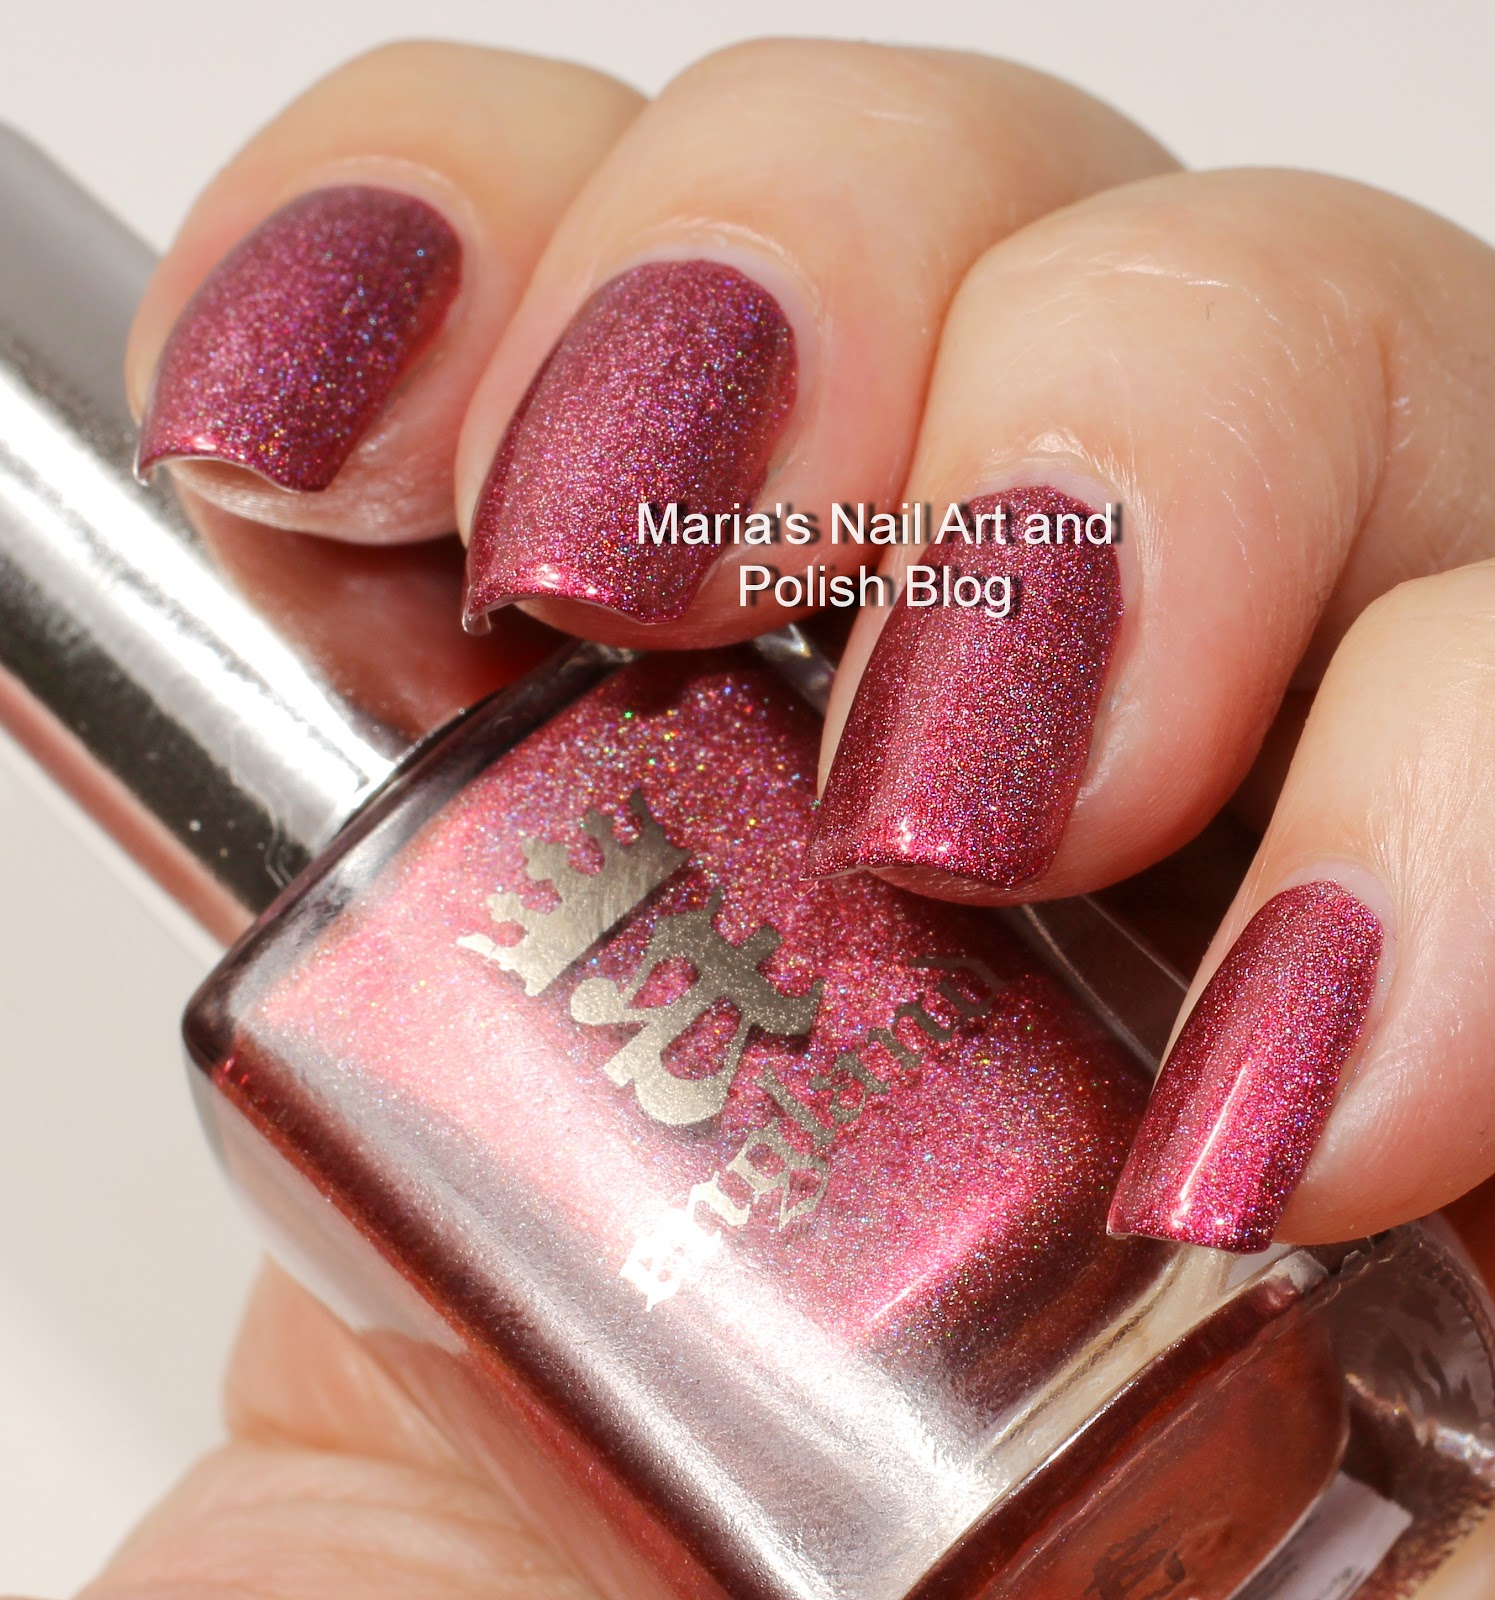 Marias Nail Art And Polish Blog Flushed With Stripes And: Marias Nail Art And Polish Blog: A England Briar Rose Aka